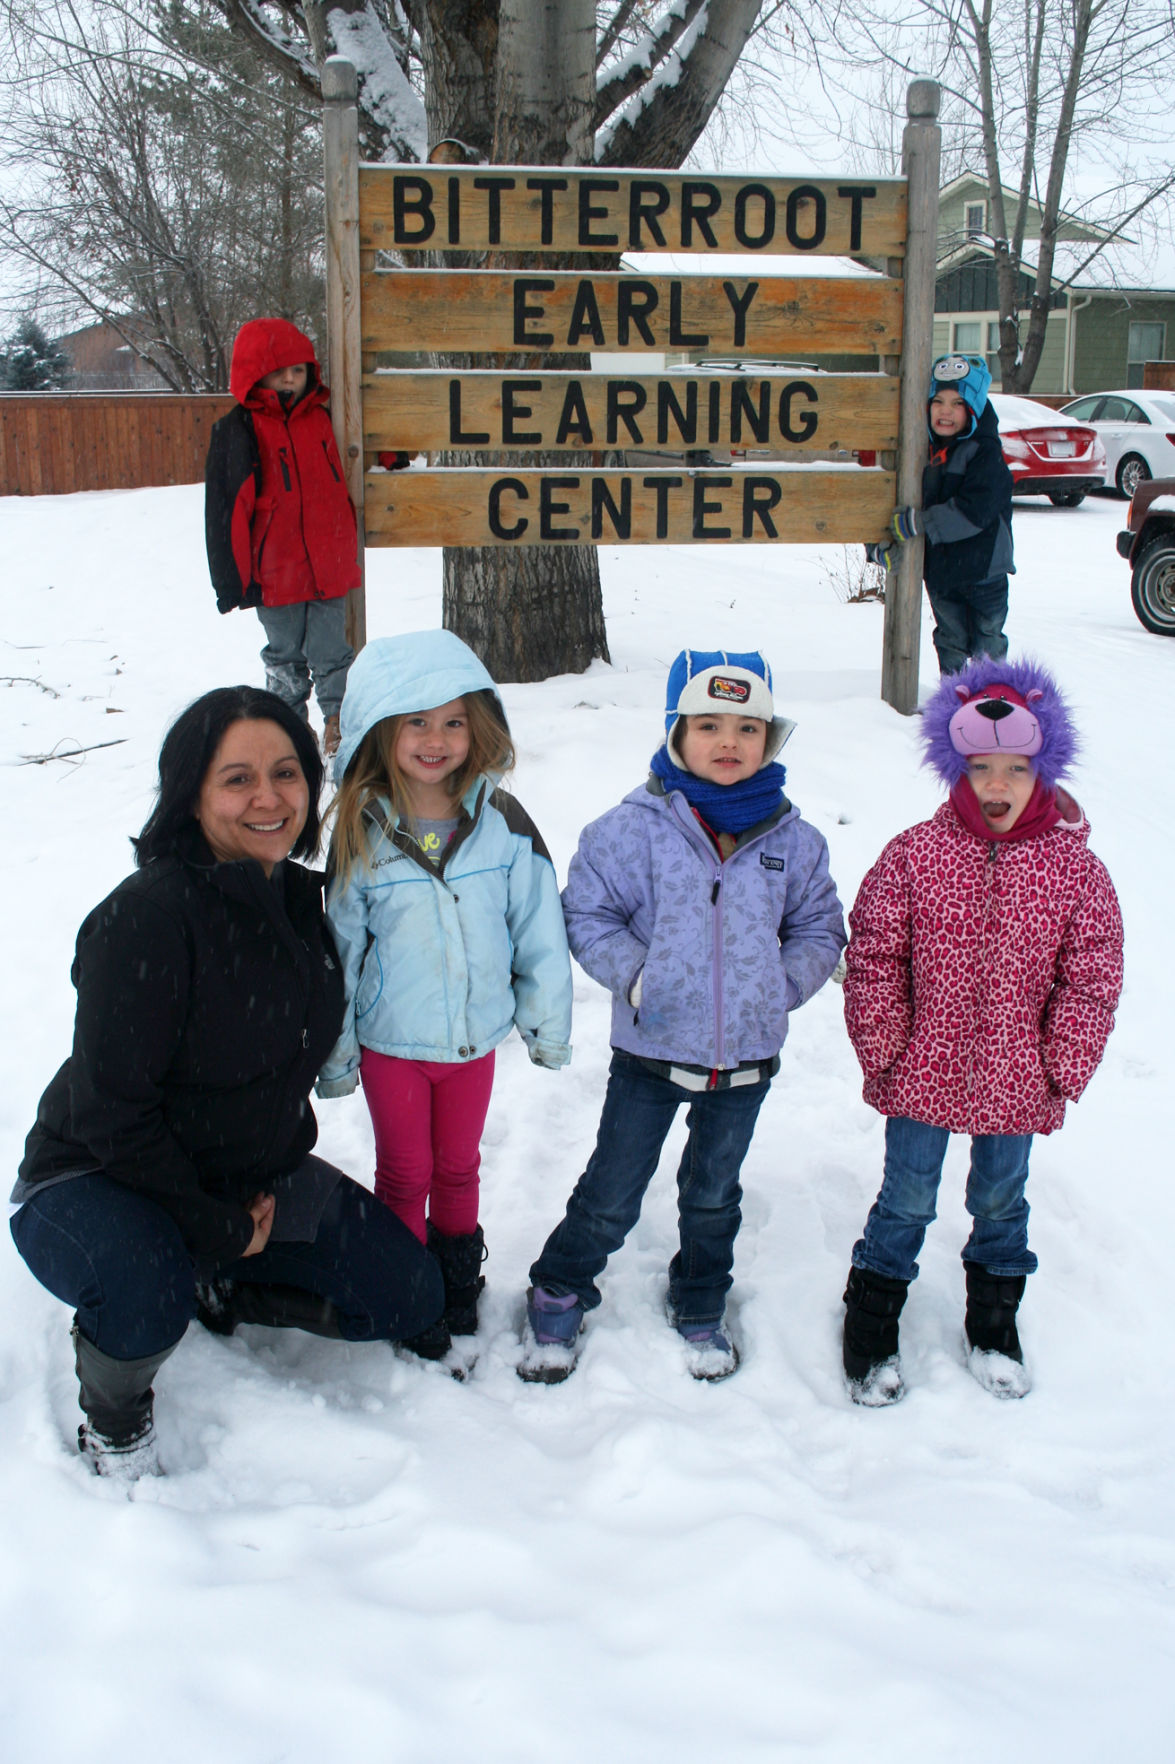 Child care stars: Corvallis' Bitterroot Early Learning